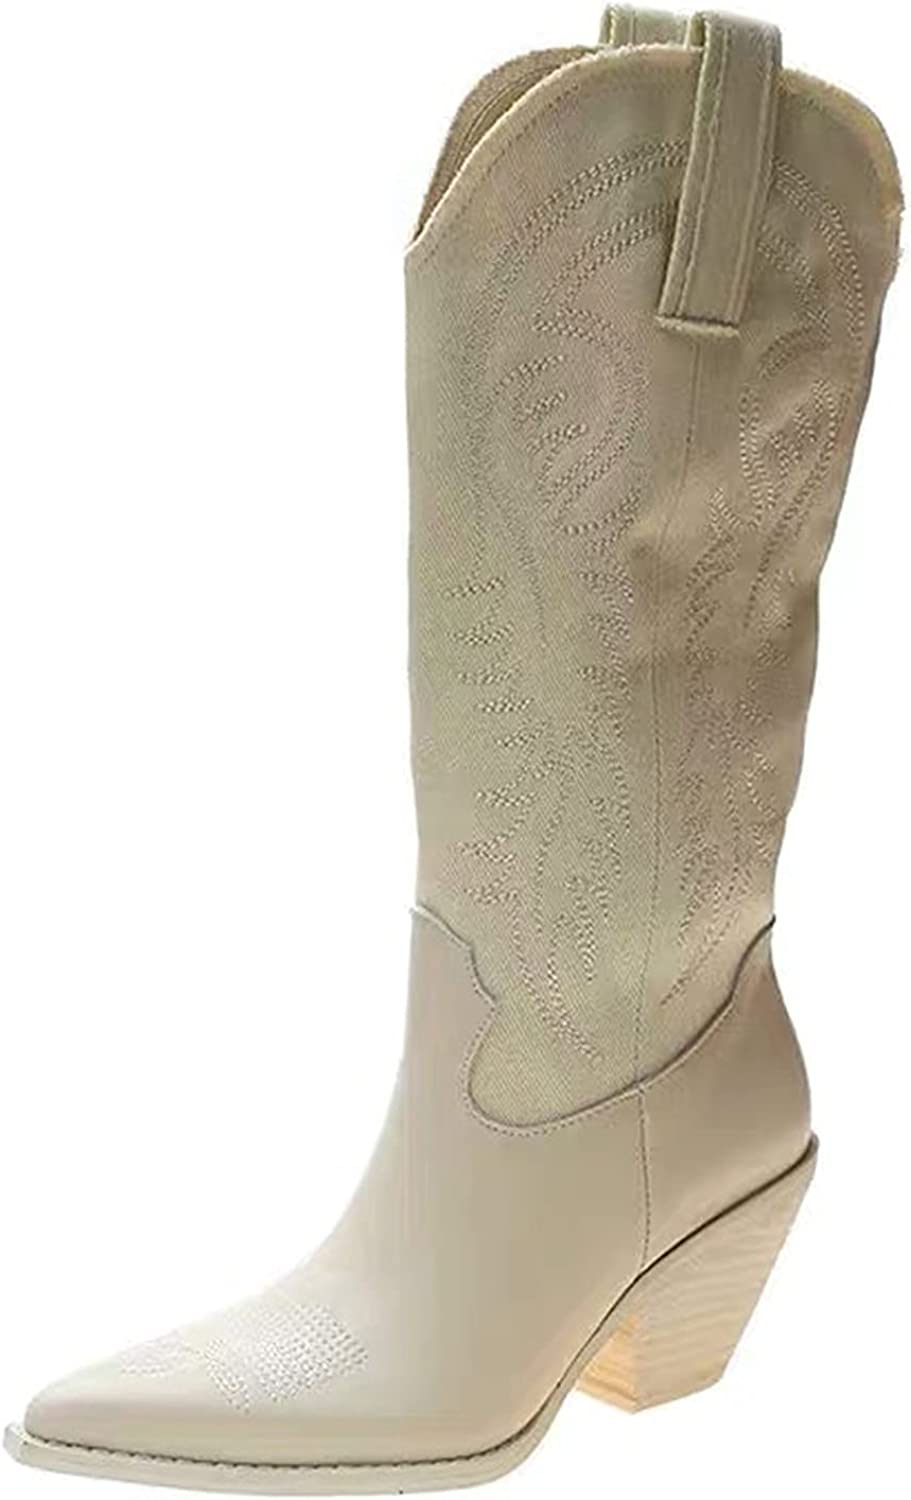 VOMIRA Women's Max 89% OFF Cowgirl Mid Calf Chunky Vintage Boots Lowest price challenge Toe Pointed